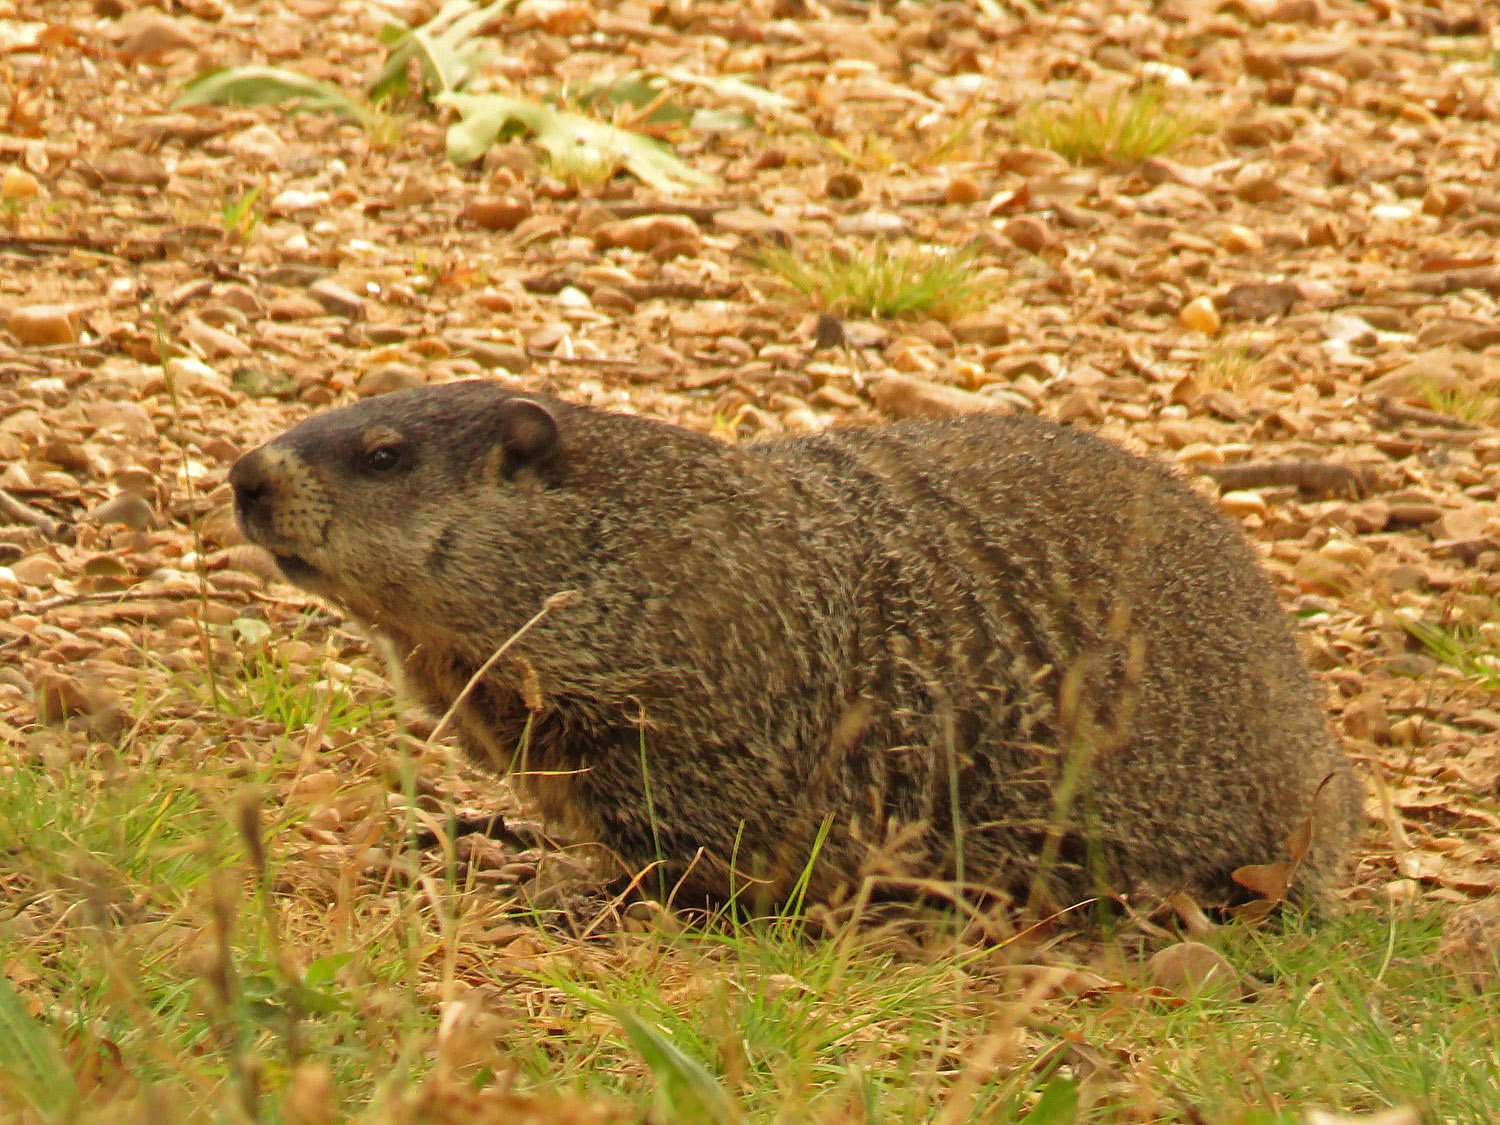 Groundhog, or woodchuck, Wolfe's Pond, September 21, 2017